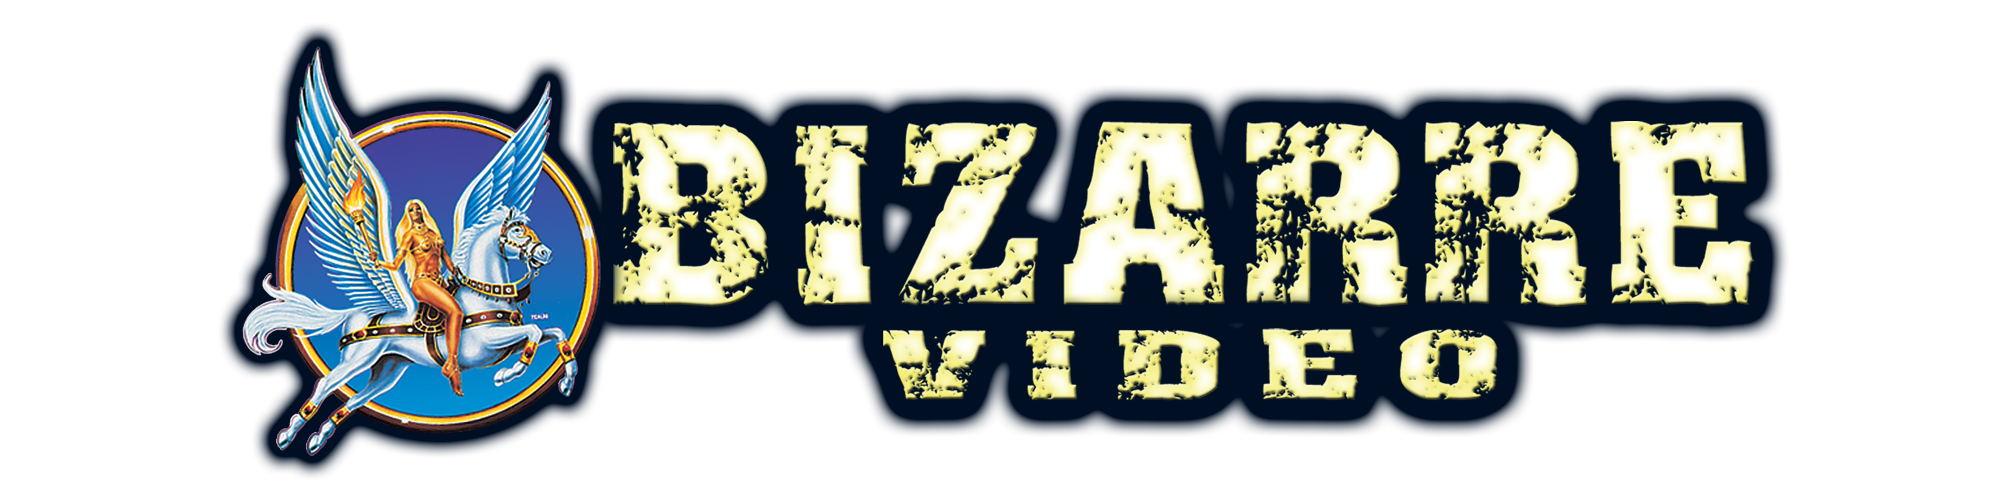 Welcome to the Bizarre Video DVD, sextoy and Video on Demand theatre and store.